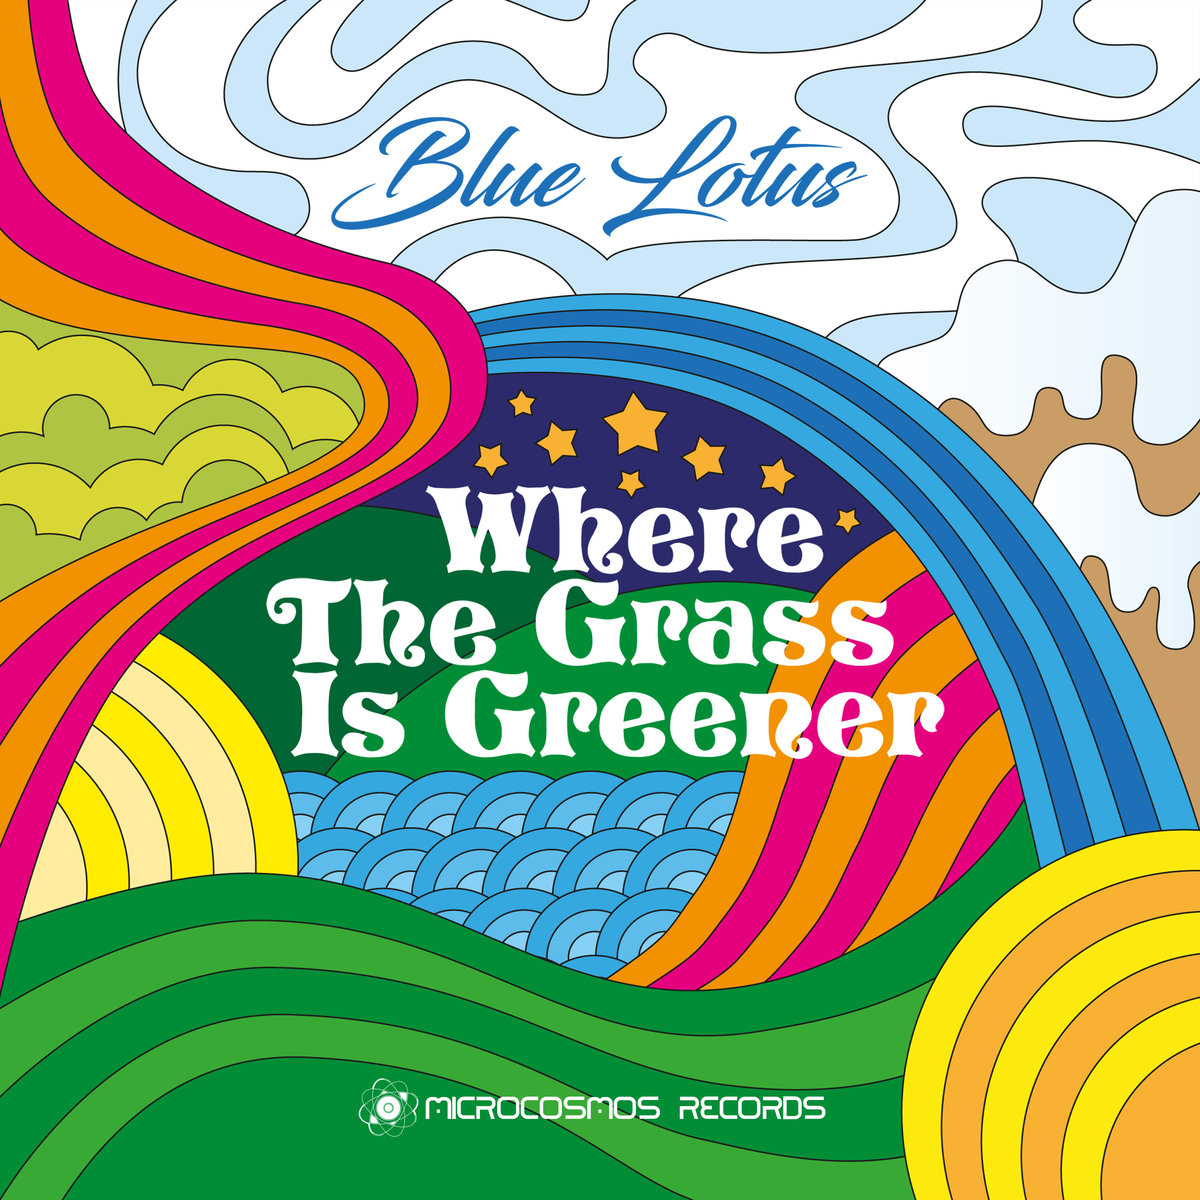 Blue Lotus - Eshu Igelu @ 'Where The Grass Is Greener' album (ambient, chill-out)